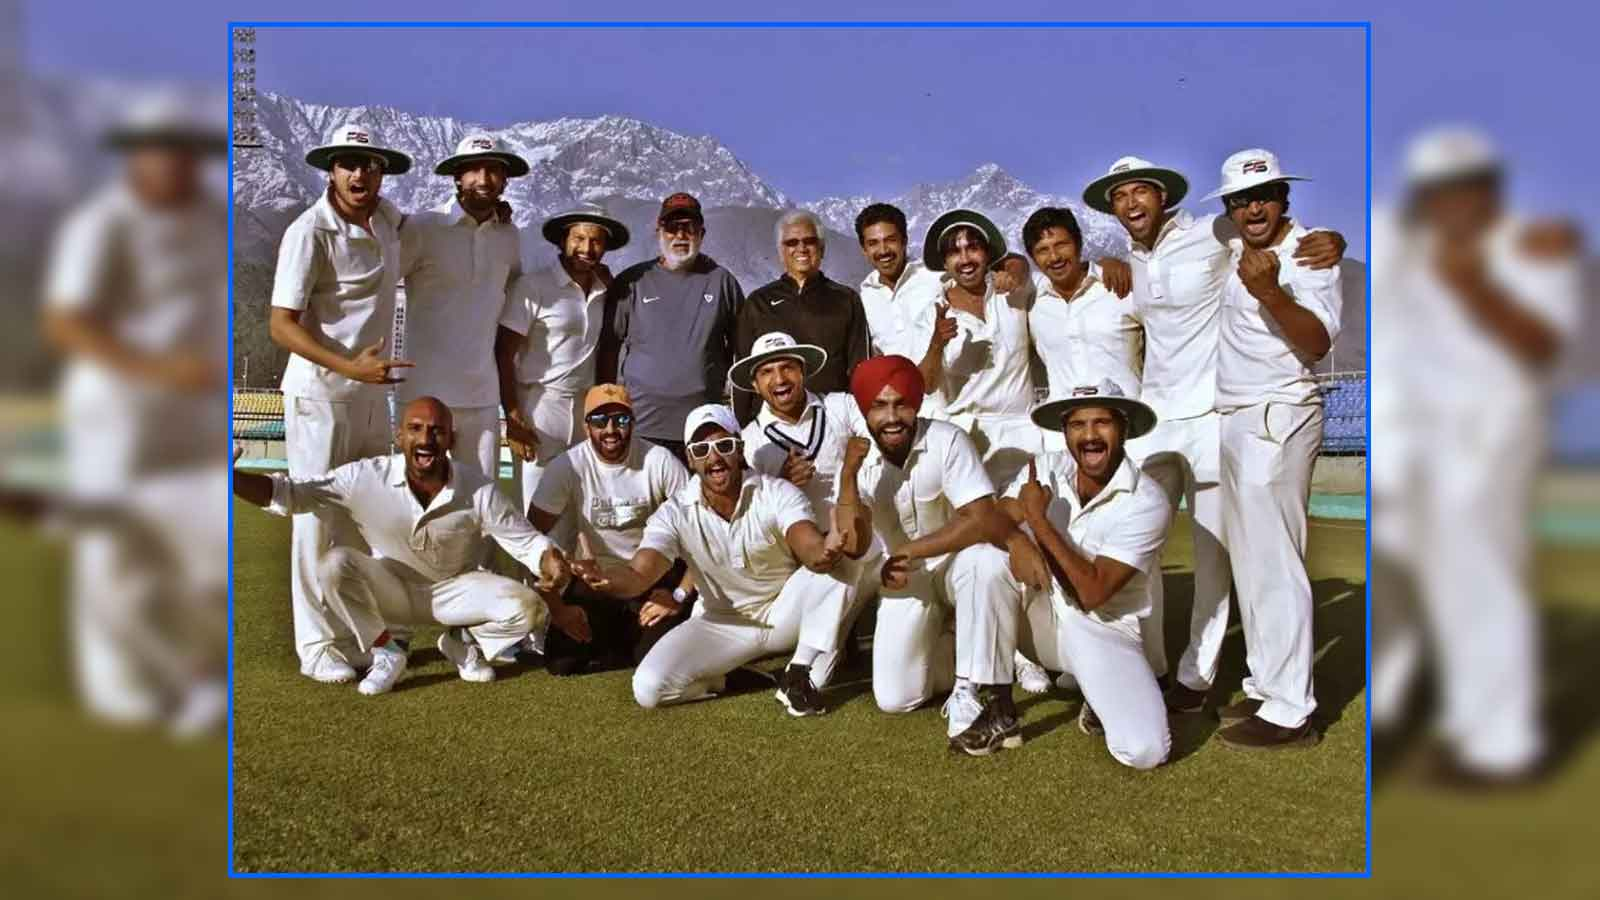 Ranveer Singh and '83' cast likely to play with 1983 West Indies World Cup team